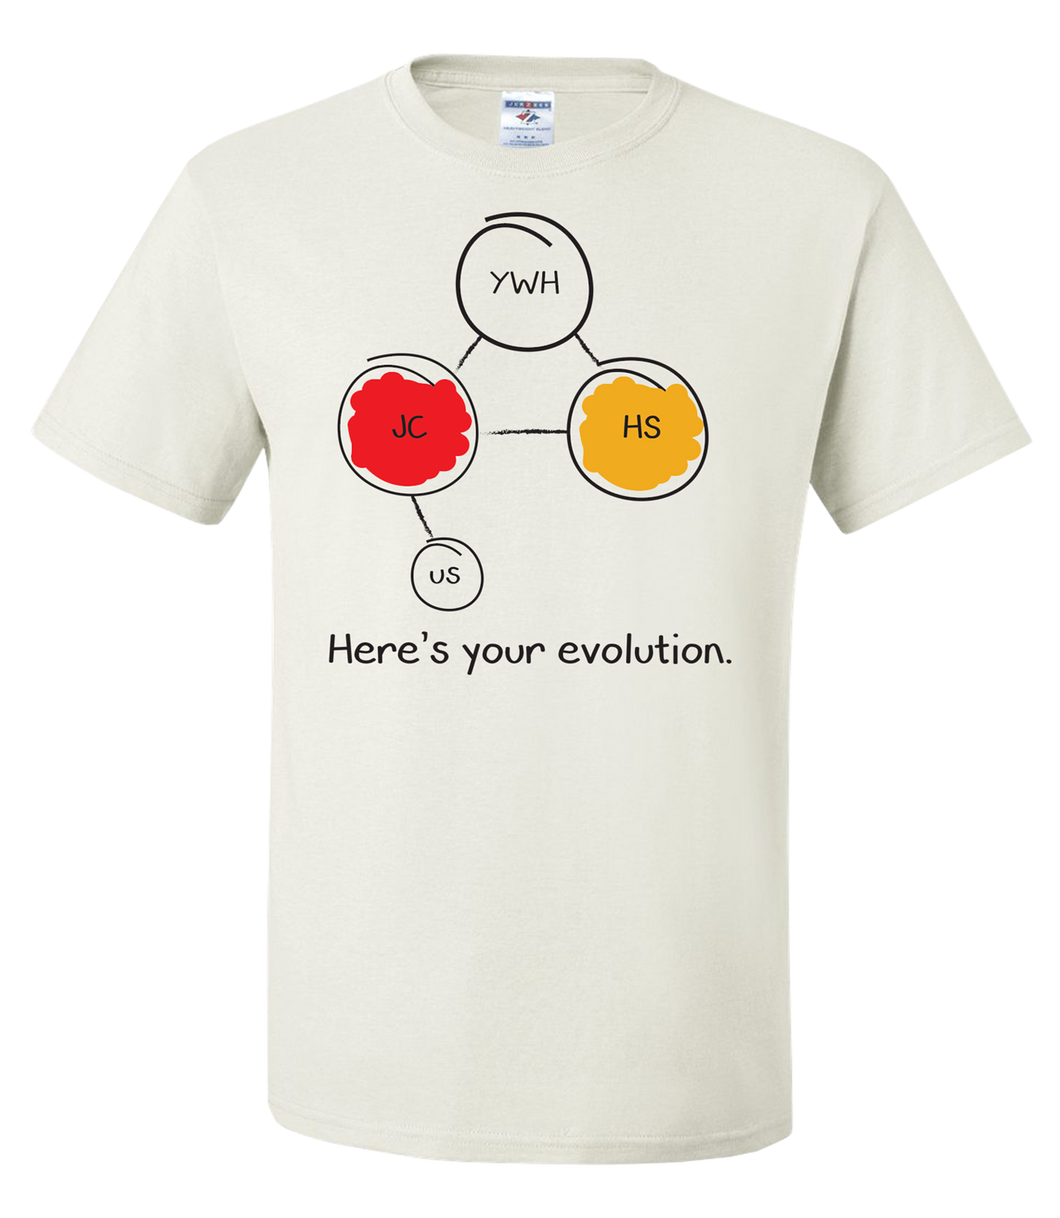 Here's your evolution [Wht]